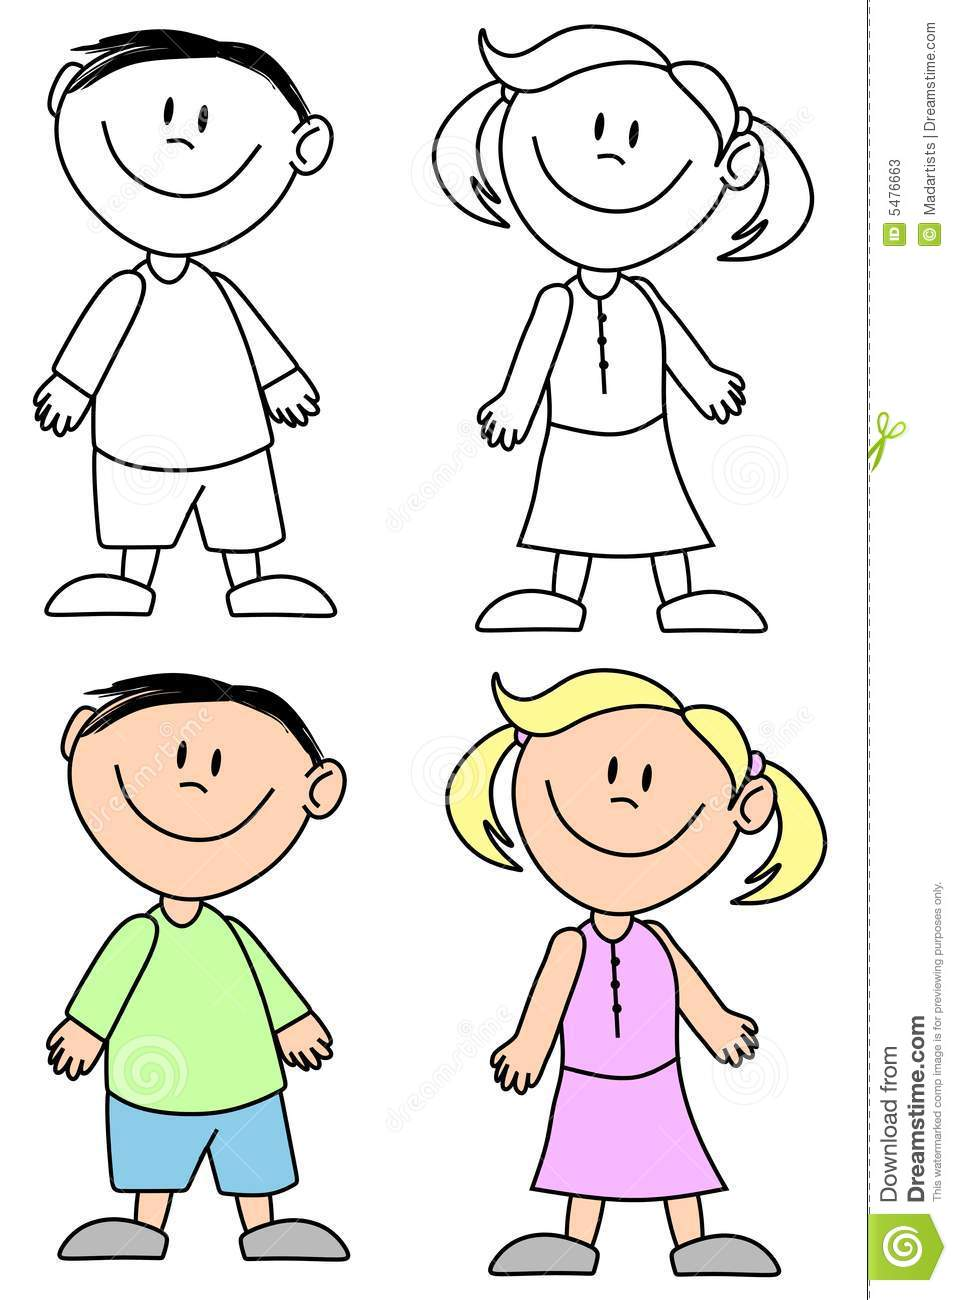 Girl and boy clipart black and white free graphic library library Black And White Clipart Boy And Girl - Free Clipart graphic library library